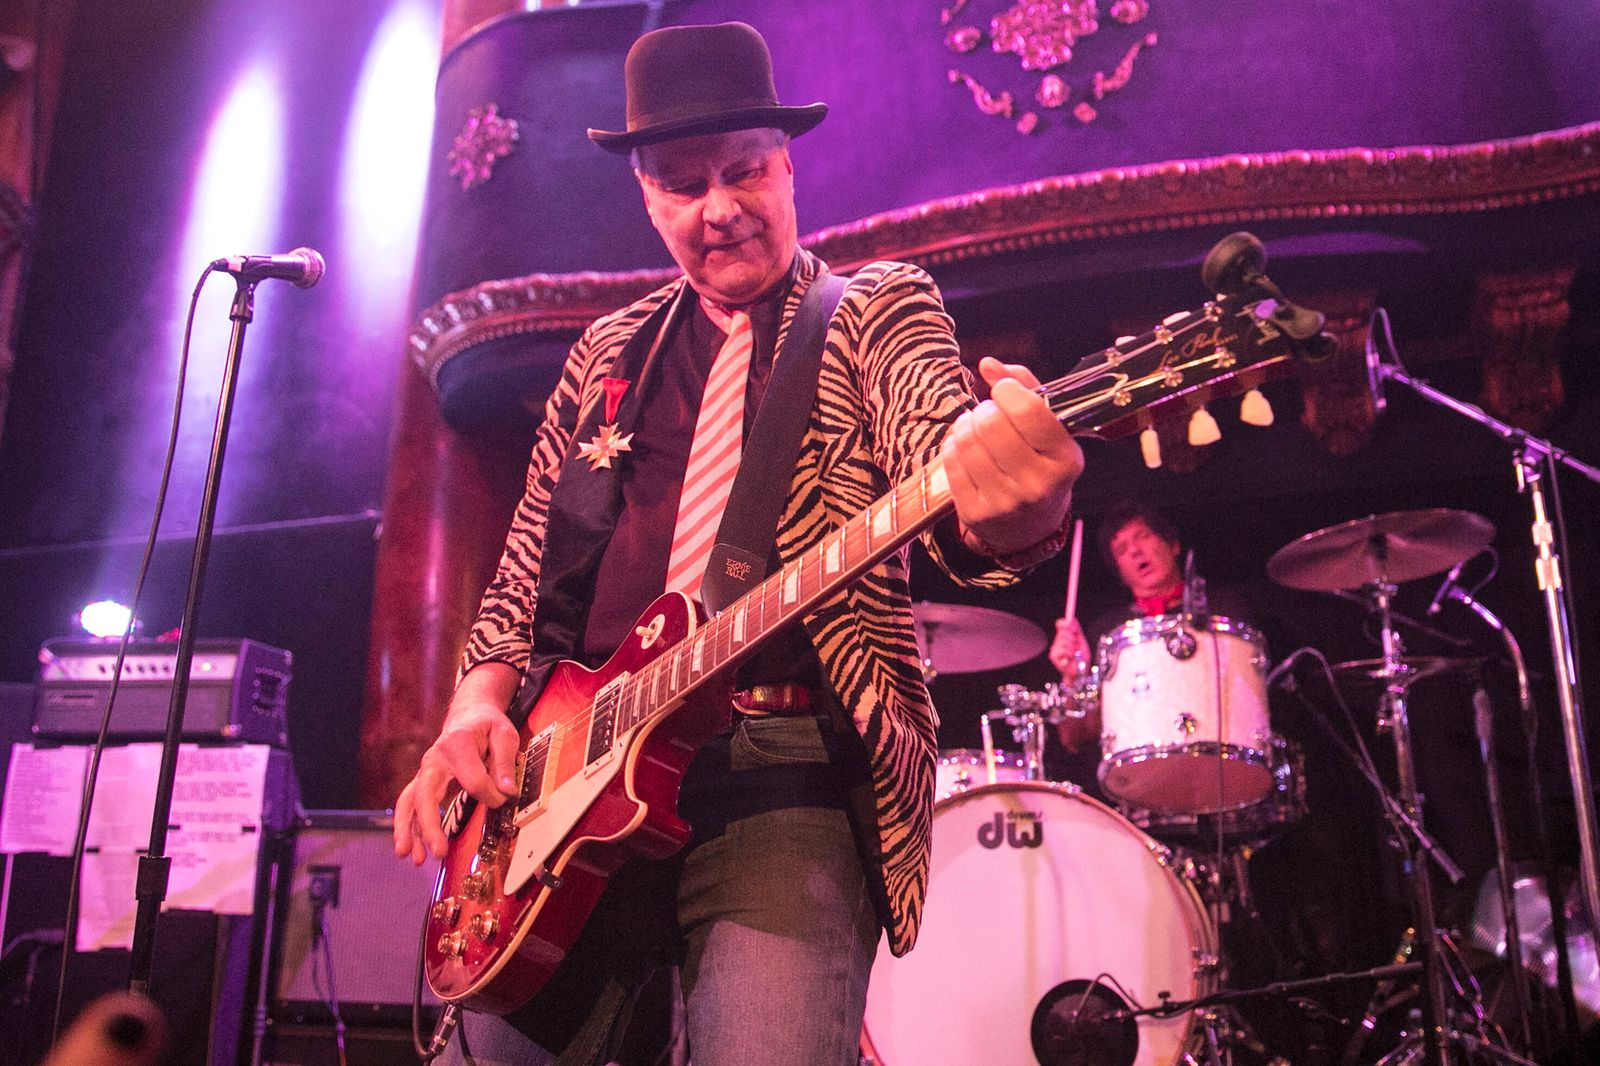 Guitarist Walter Lure performs with L.A.M.F. at the Great American Music Hall on December 4, 2017 in San Francisco, Cali